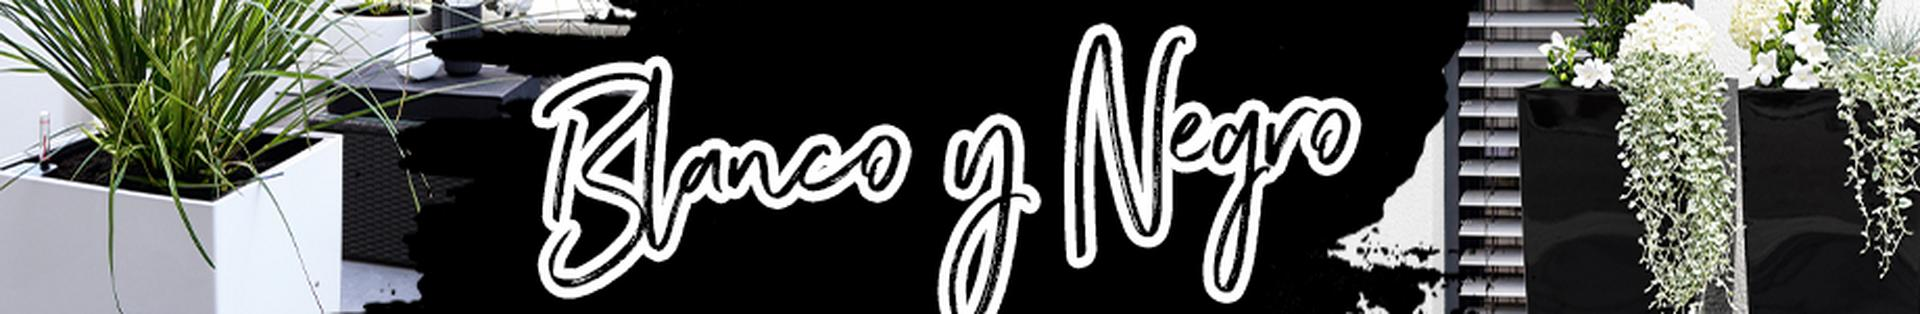 le_listing_banner_black-and-white_072020_xs_es